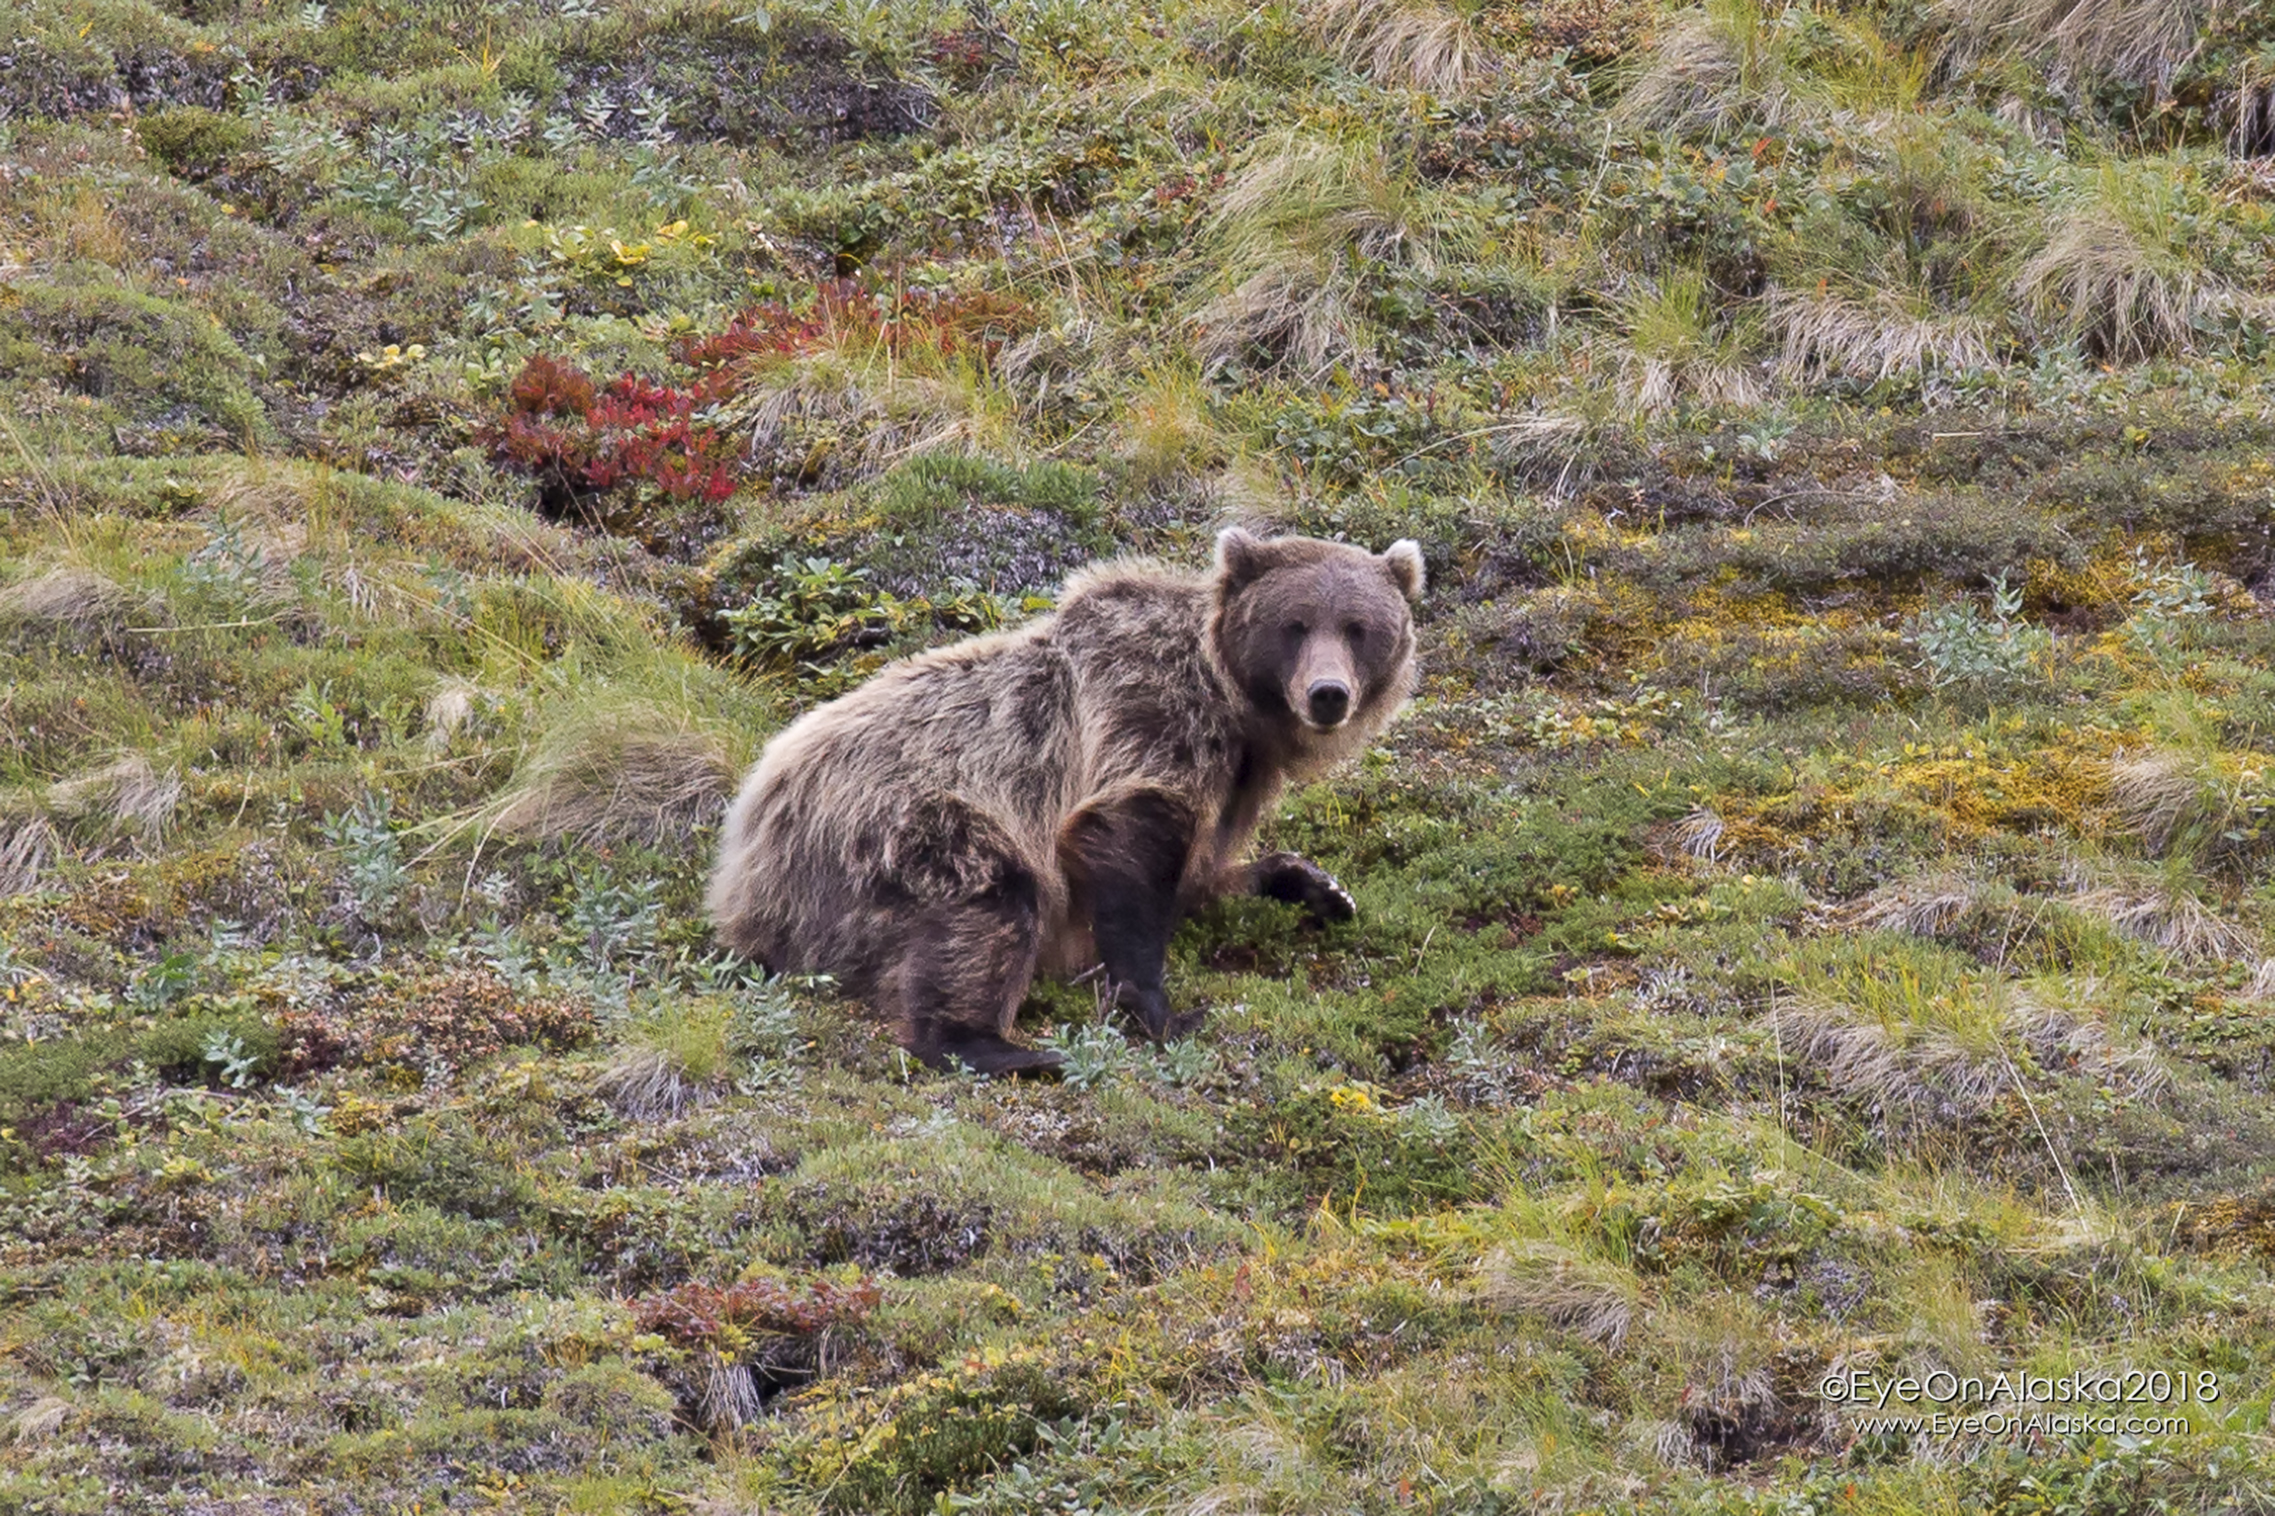 Nothing like a good-sized grizzly bear staring straight at you to get your attention :)